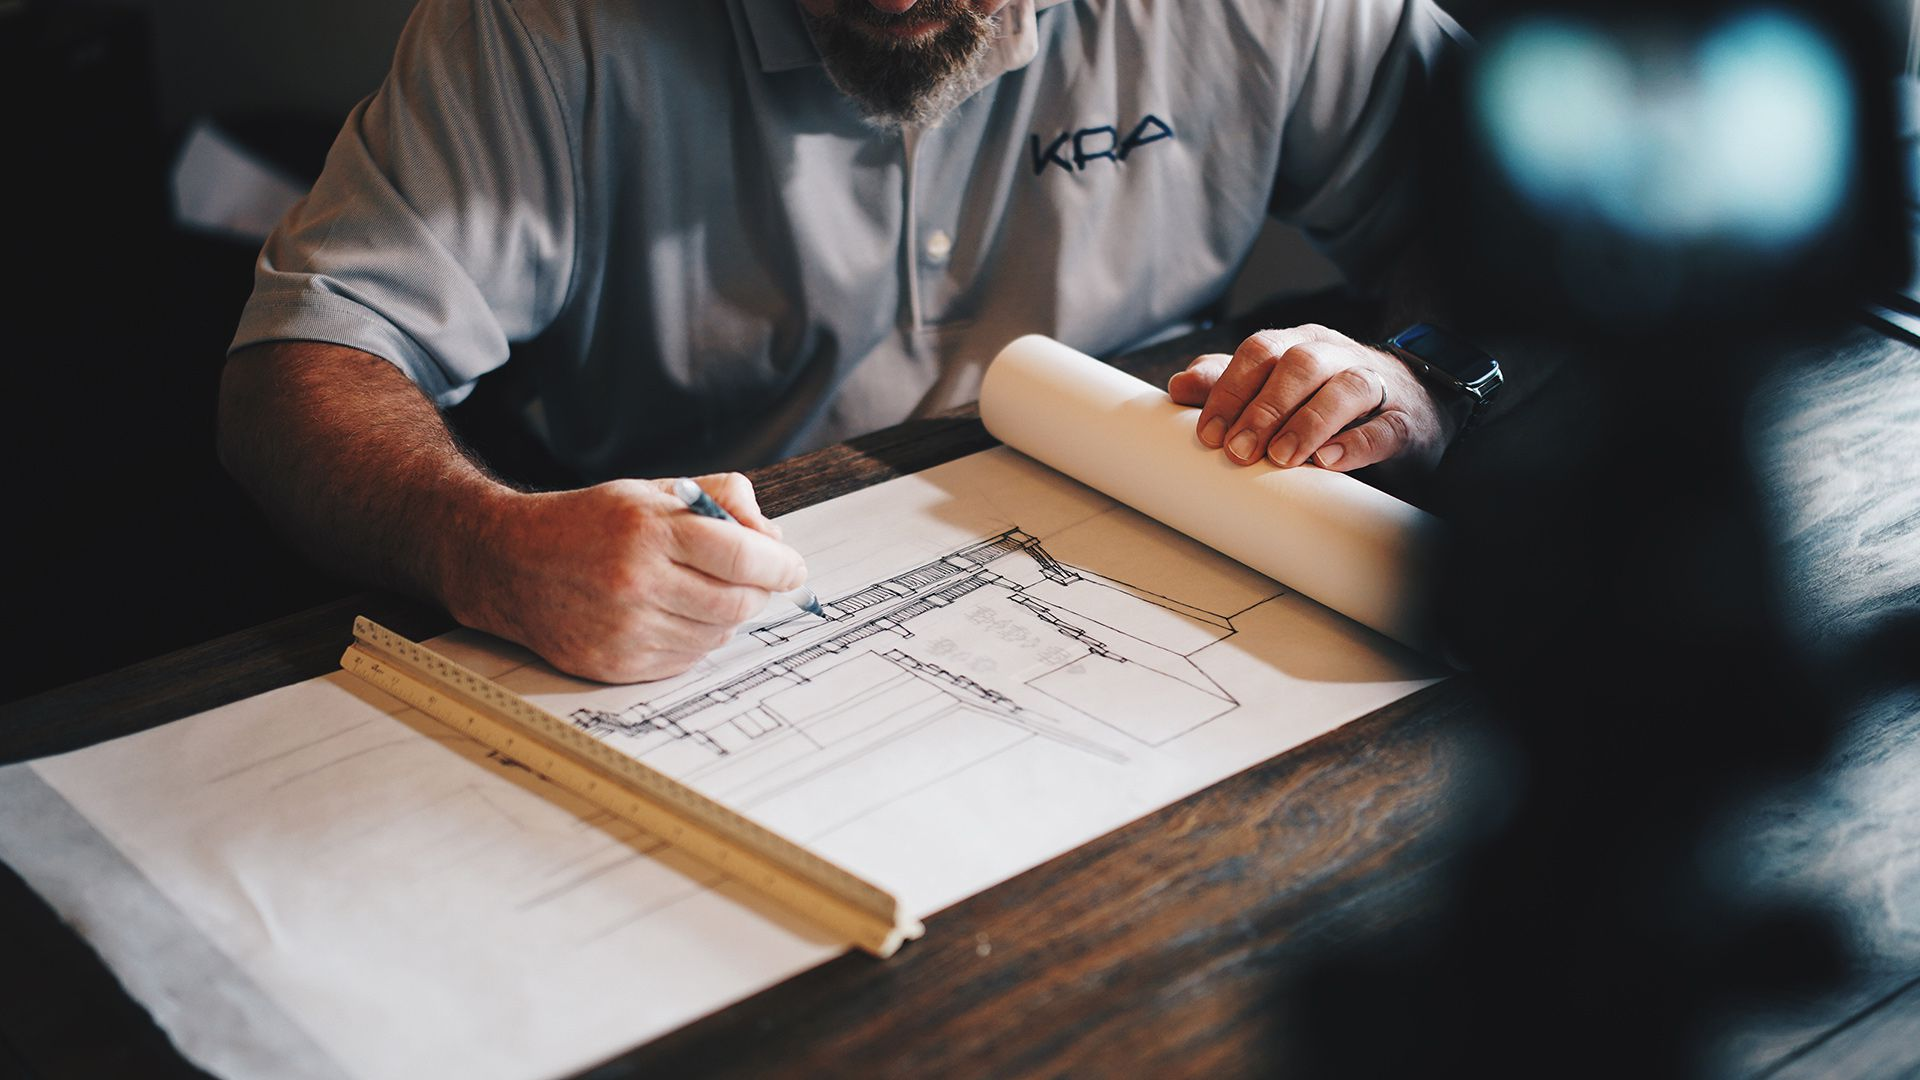 man with beard drawing blueprints on a wood table